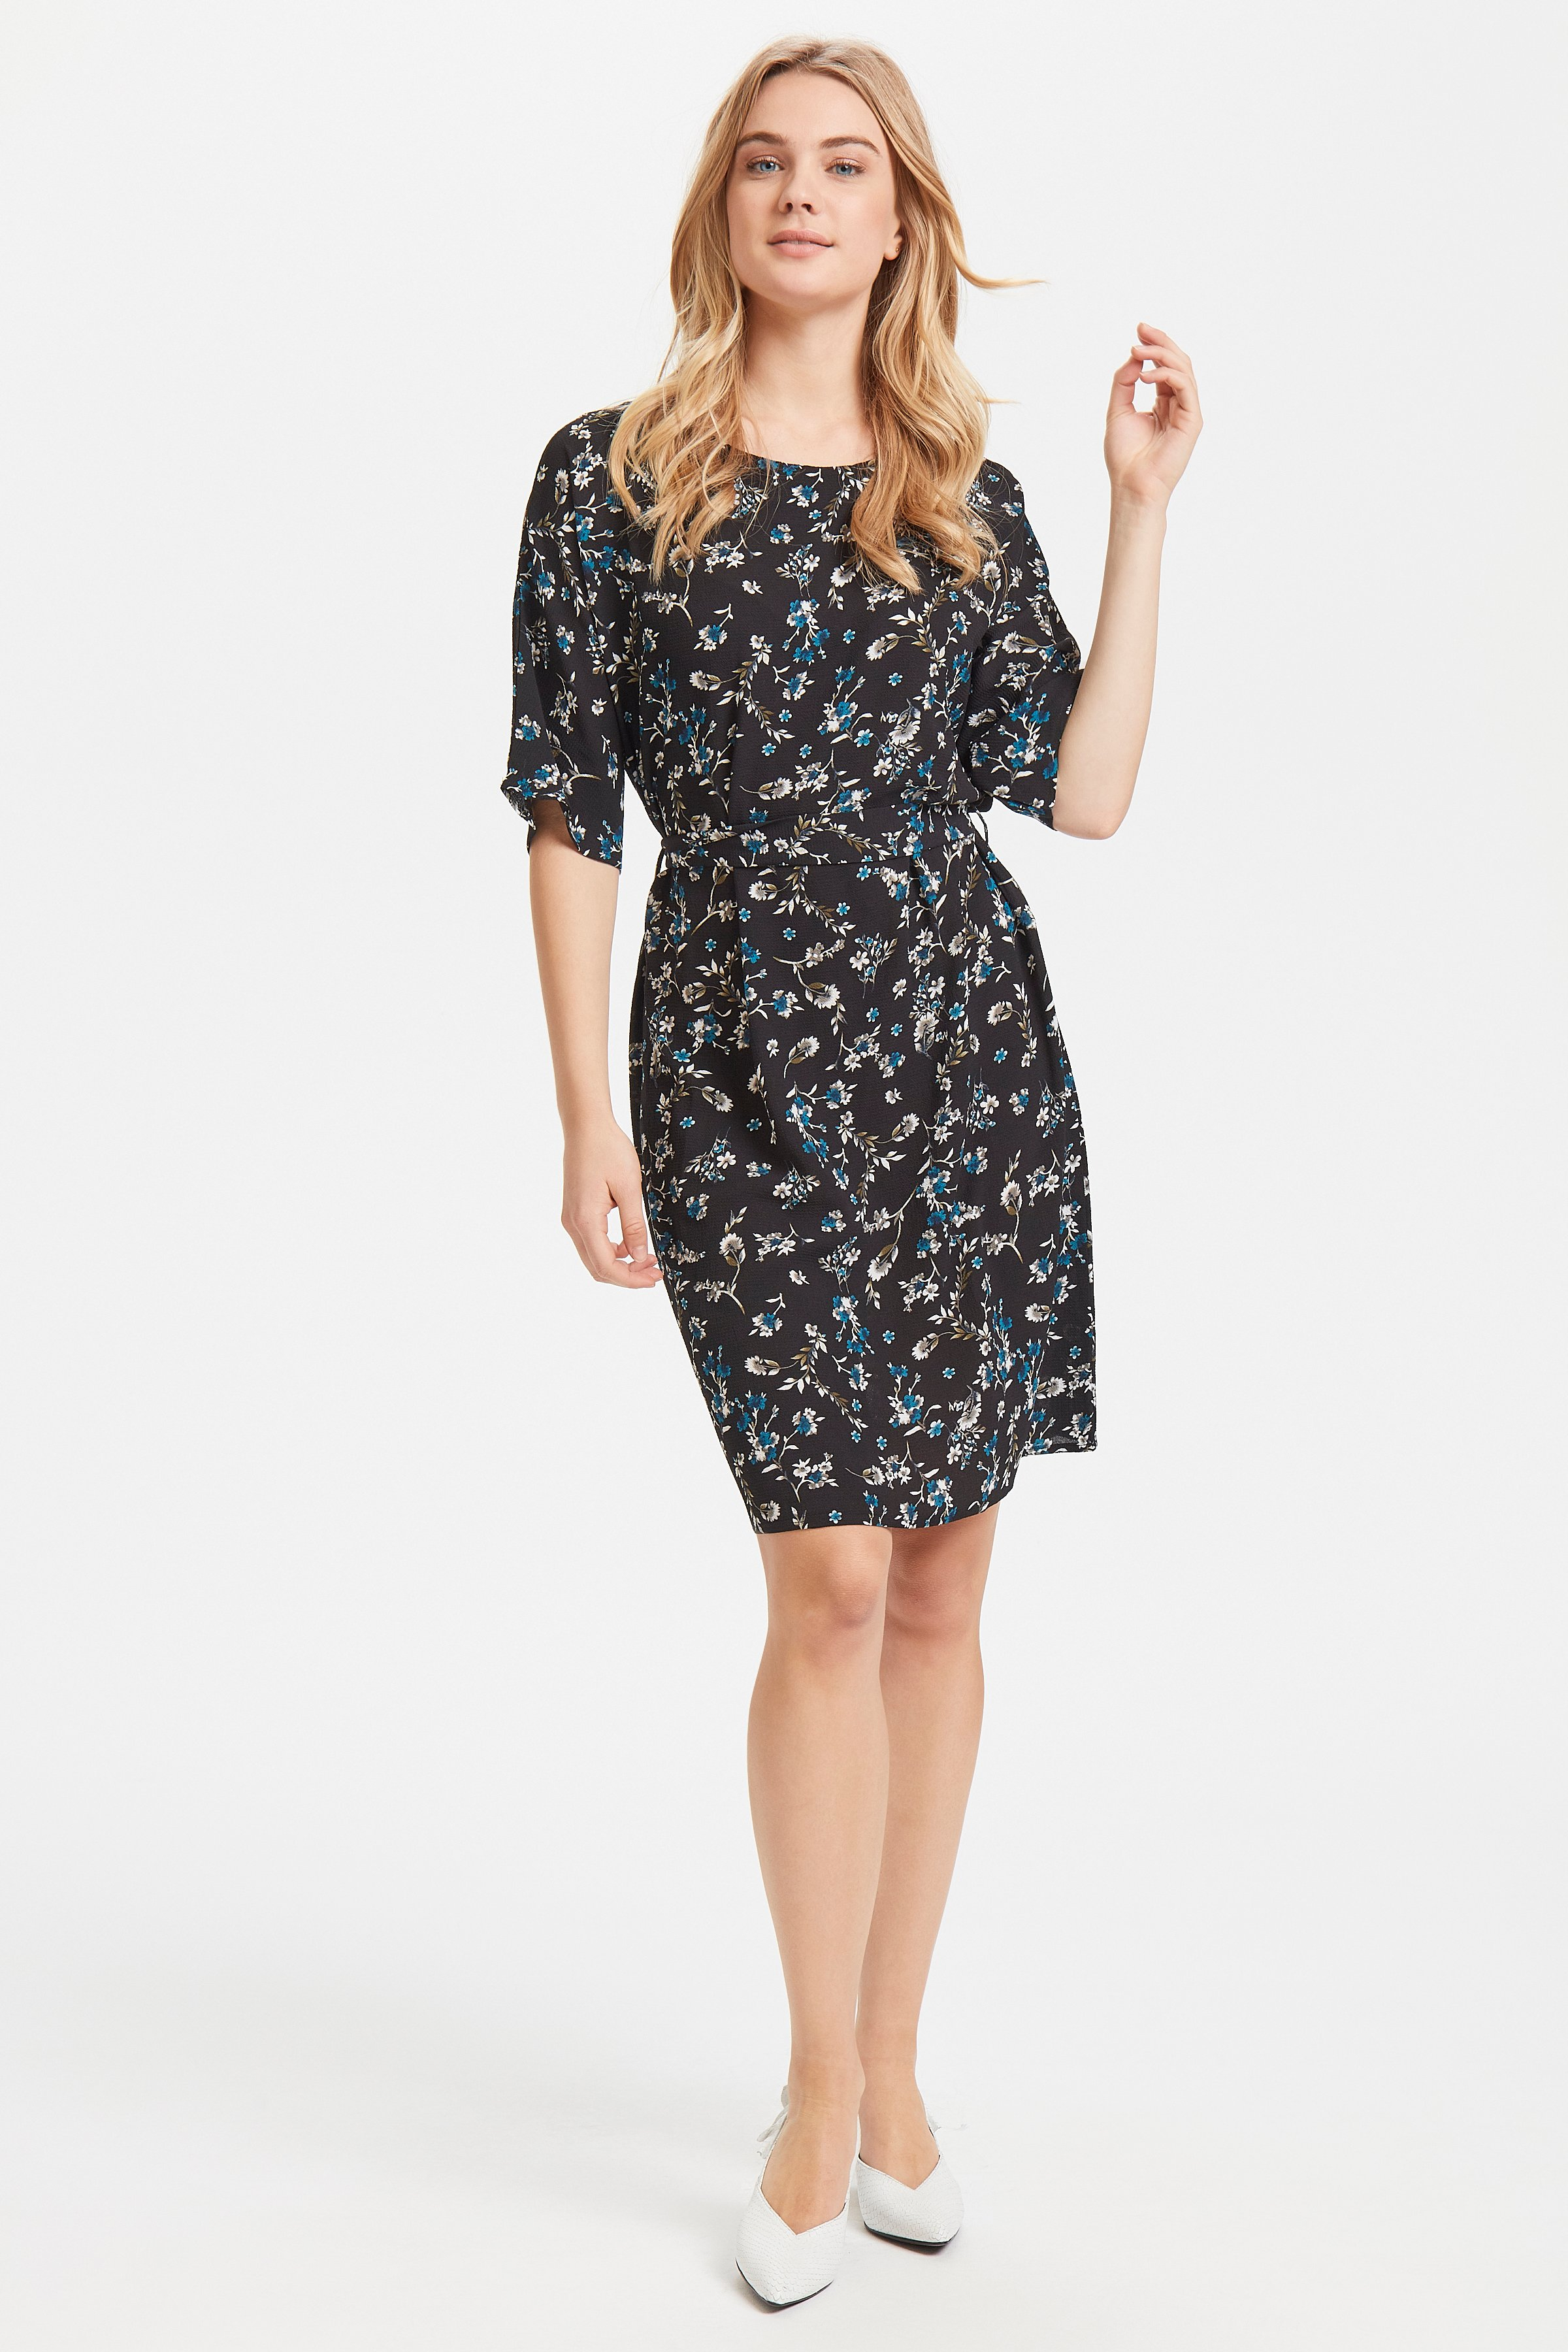 Black combi 2 Dress from b.young – Buy Black combi 2 Dress from size 34-42 here